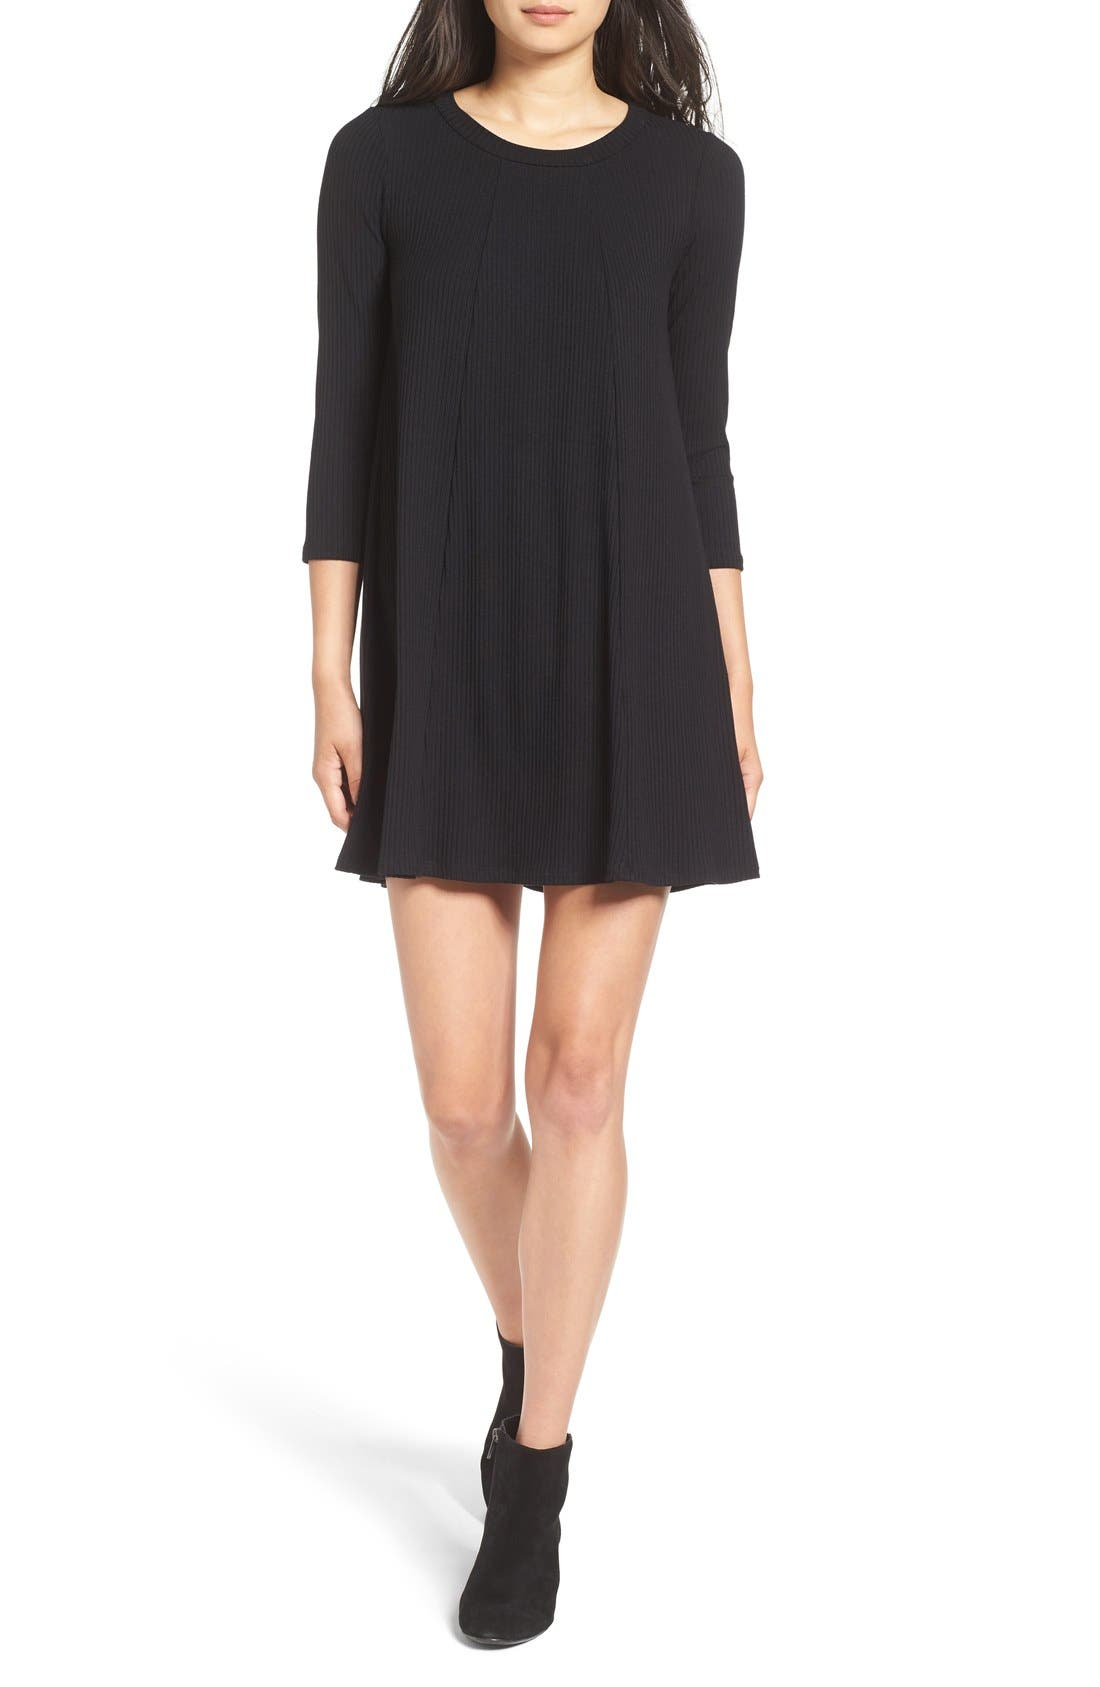 Alternate Image 1 Selected - Lush 'Leah' Shift Dress